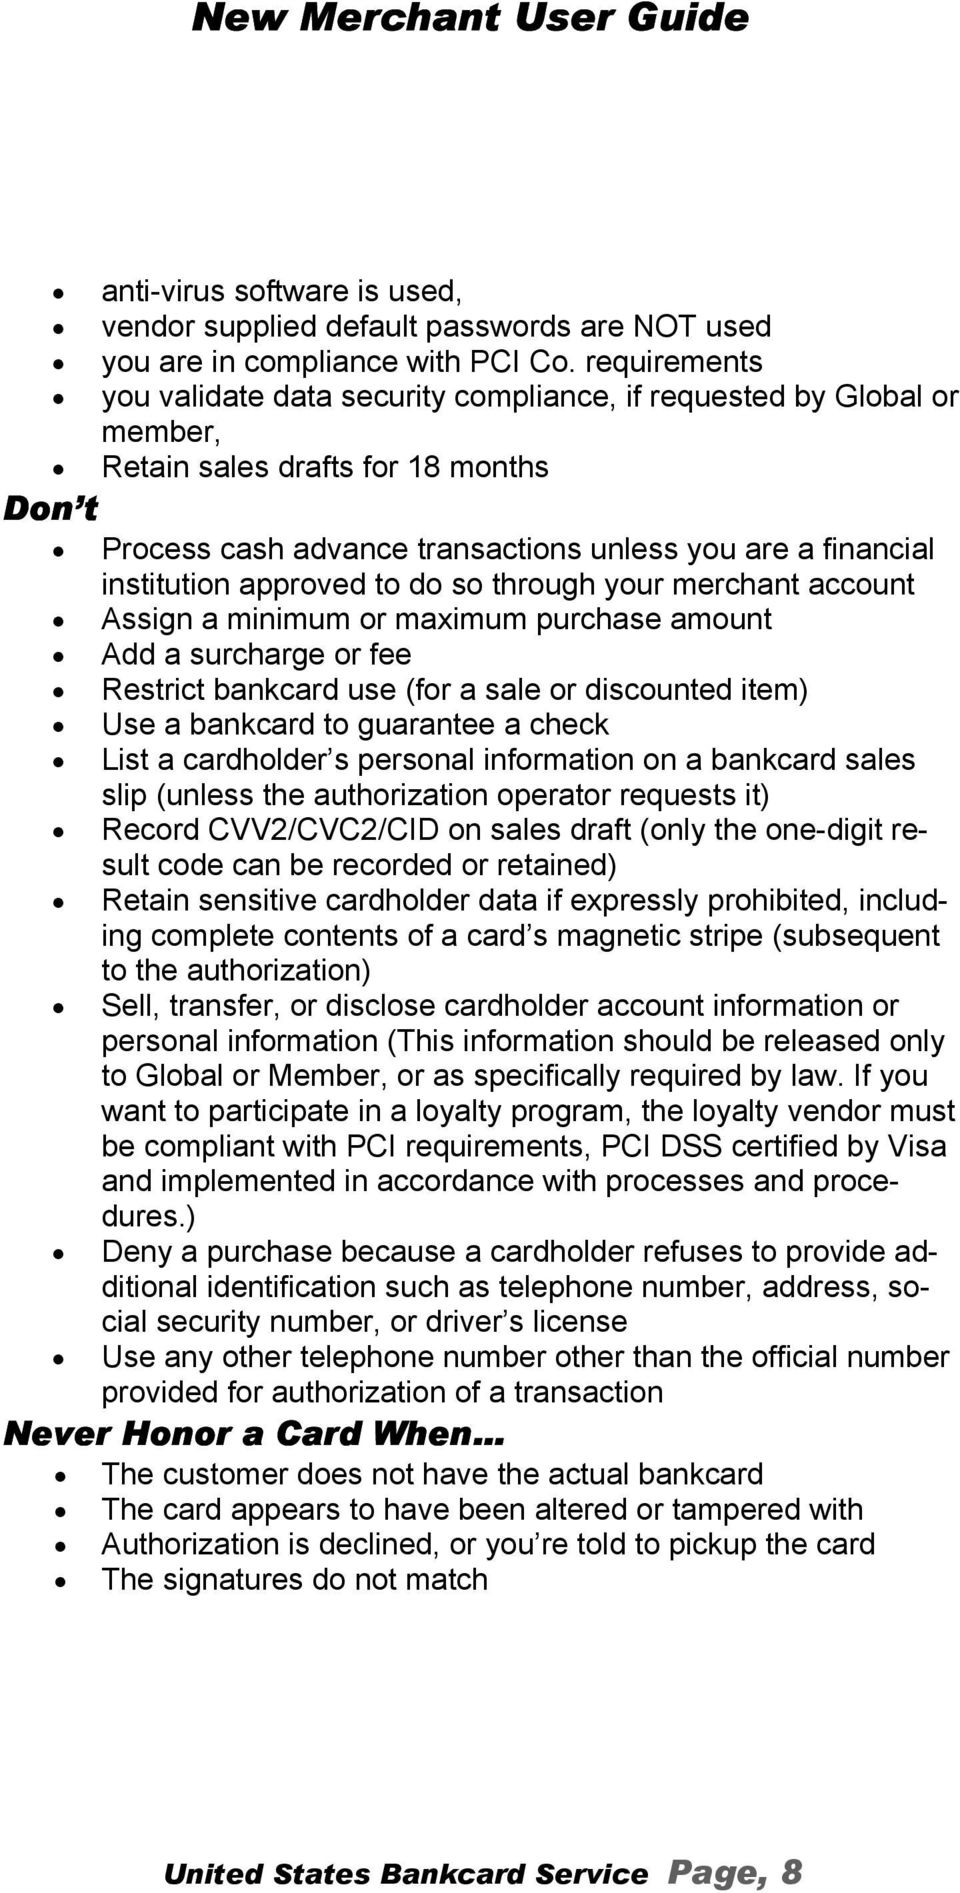 approved to do so through your merchant account Assign a minimum or maximum purchase amount Add a surcharge or fee Restrict bankcard use (for a sale or discounted item) Use a bankcard to guarantee a